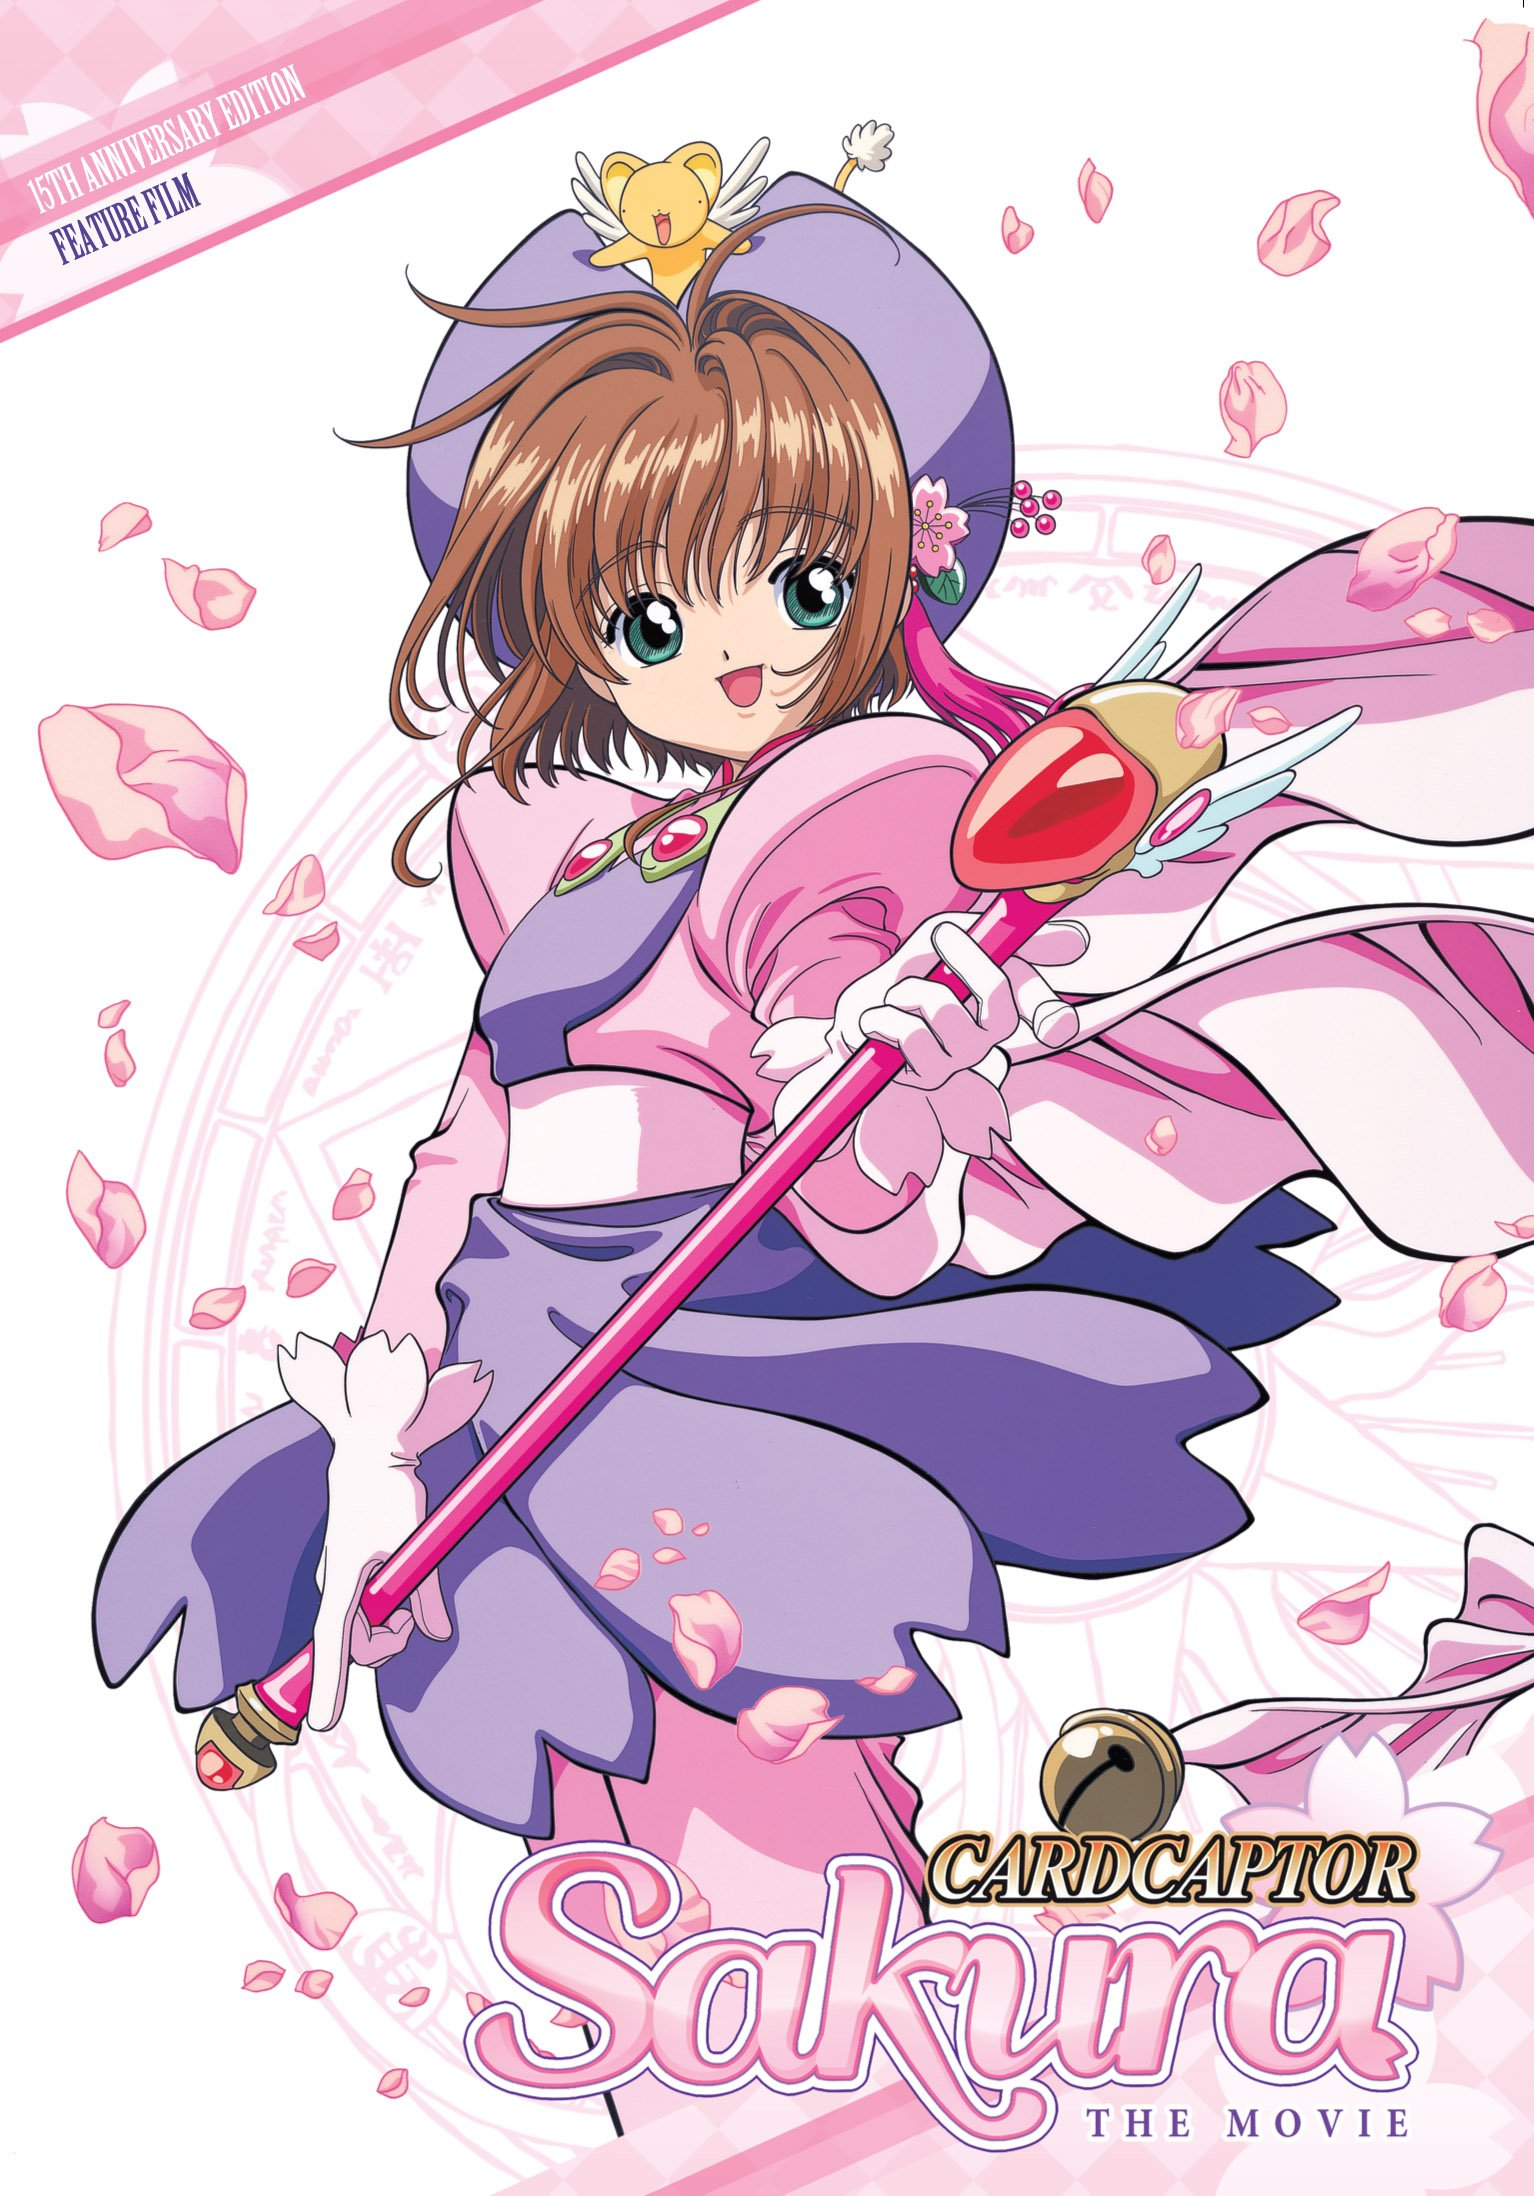 DVD : Artist Not Provided - Cardcaptor Sakura The Movie (DVD)